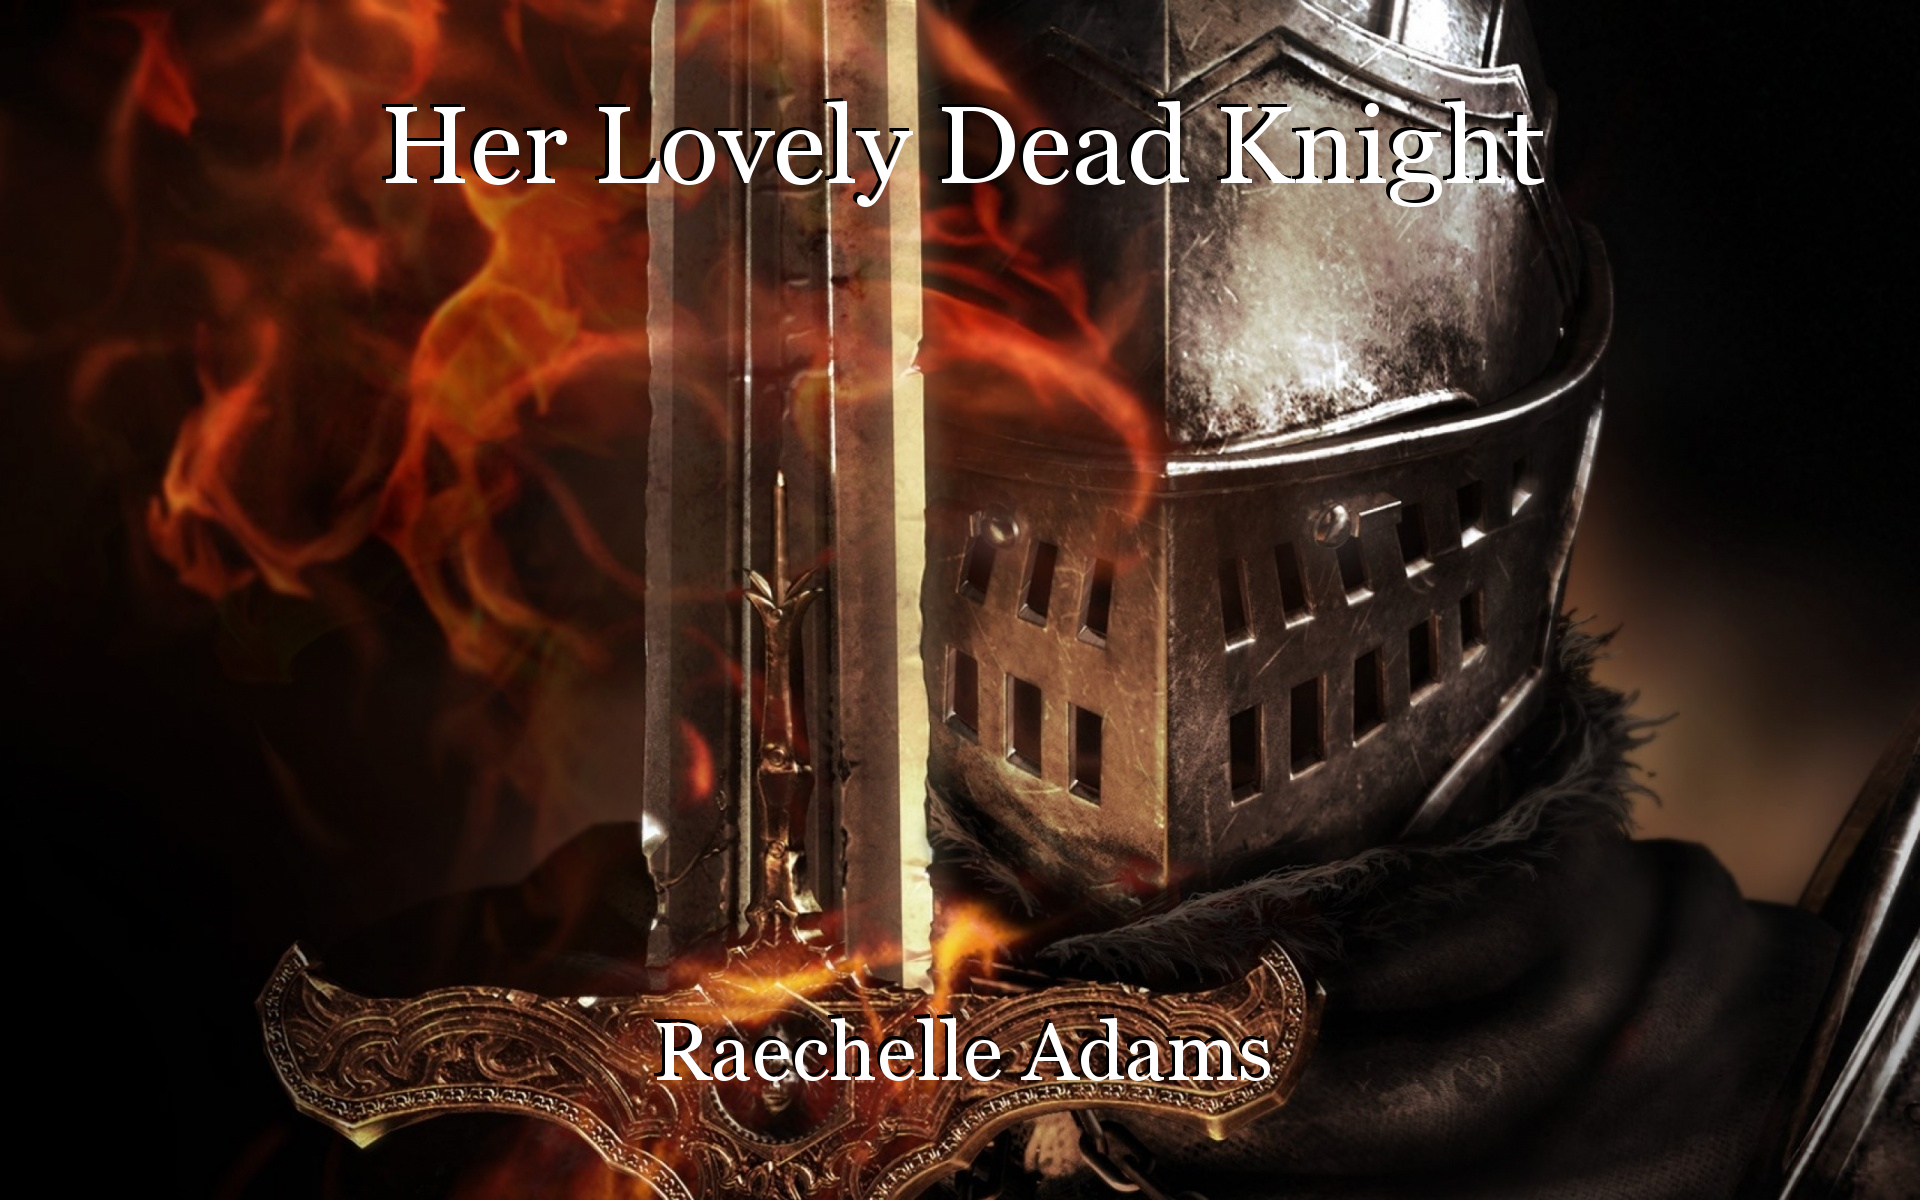 Her Lovely Dead Knight